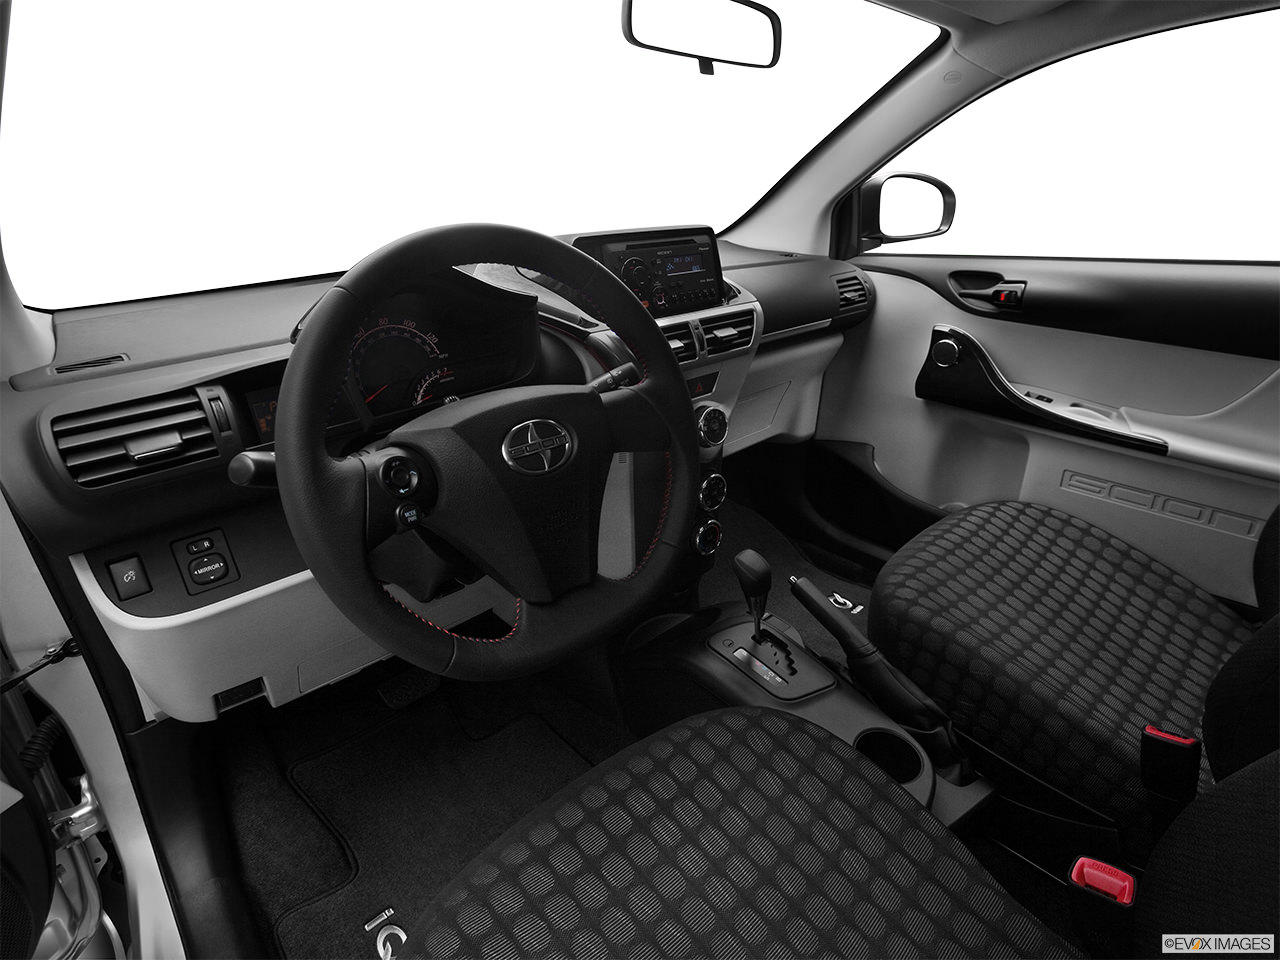 Scion iQ 2012 Interior